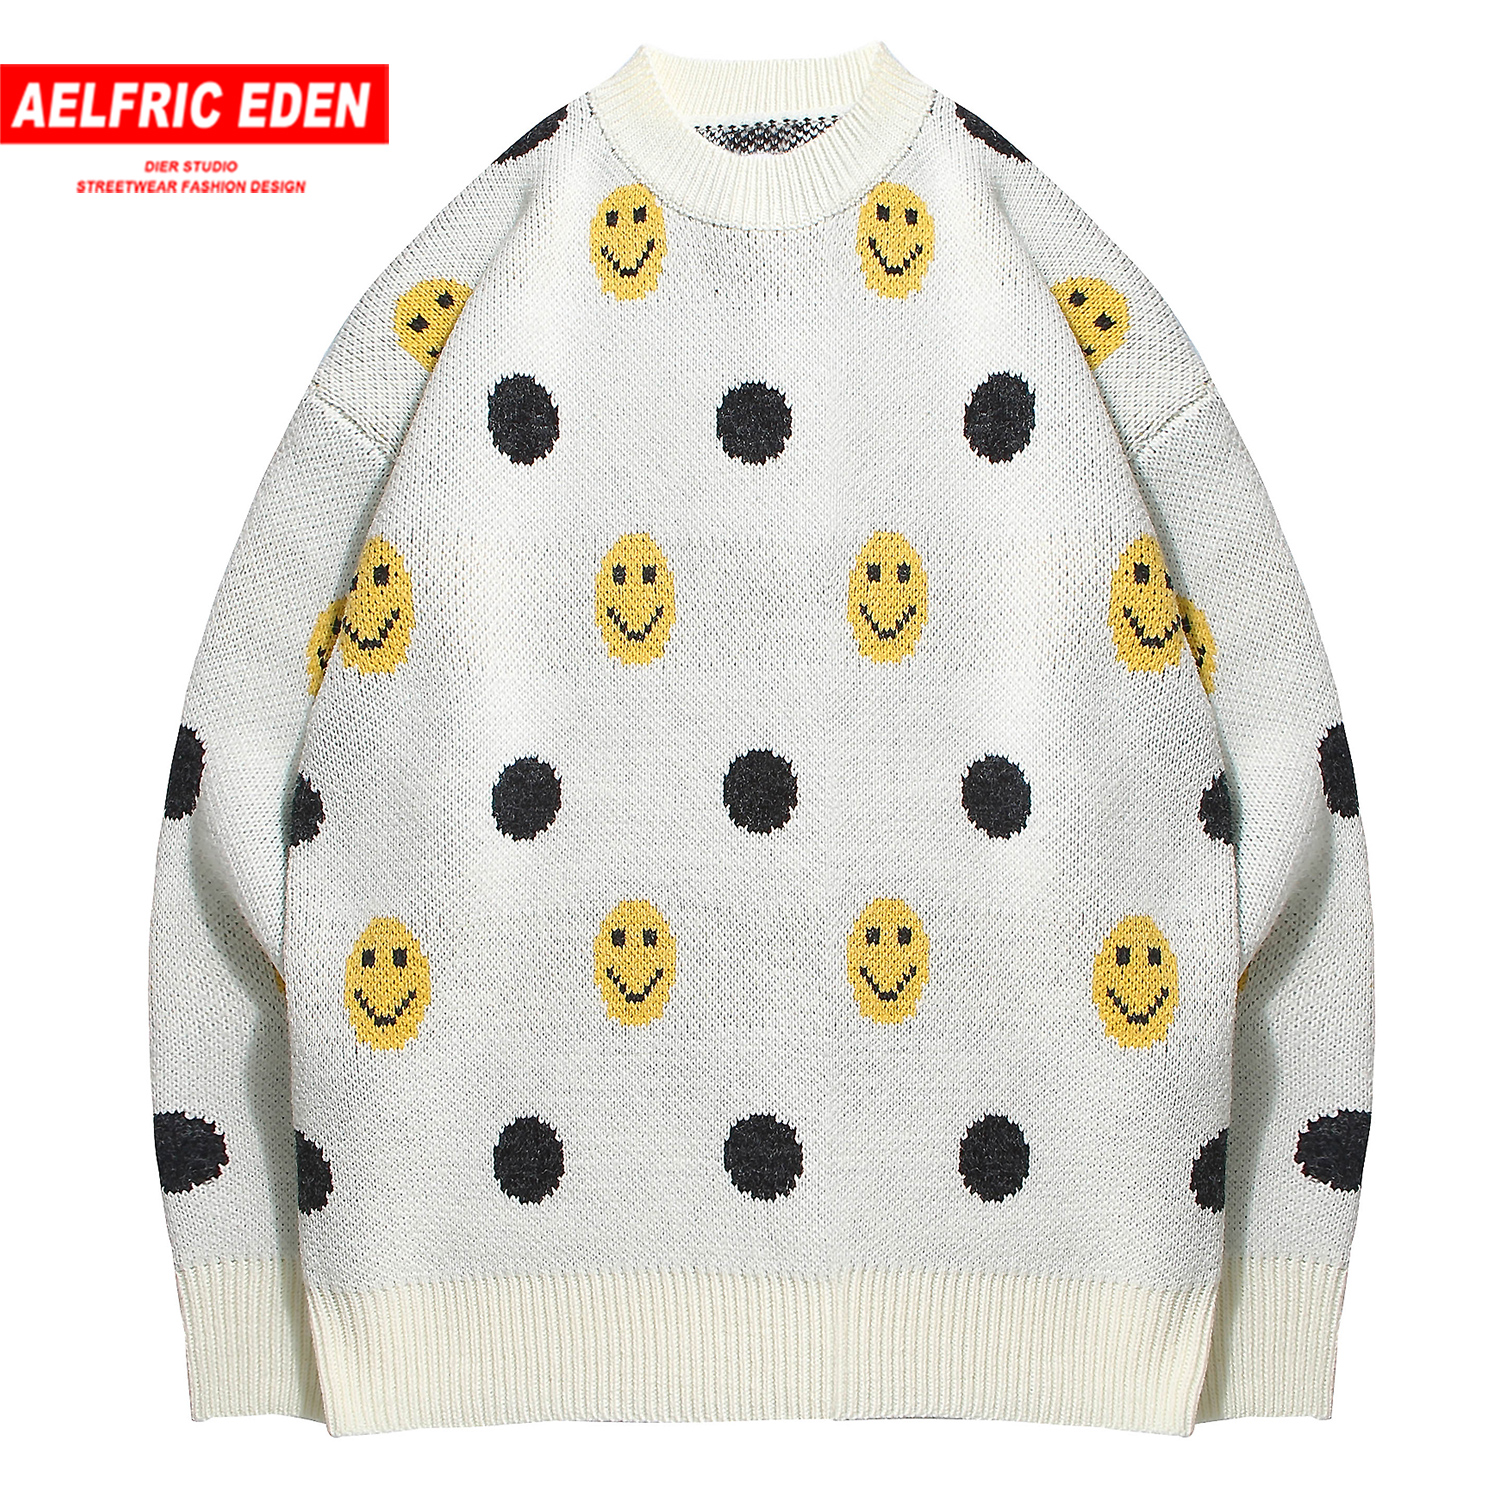 Aelfric Eden Vintage Fashion Funny Mens Knitted Pullover 2019 Harajuku Hip Hop Casual Oversized Male Sweaters Outwear Streetwear